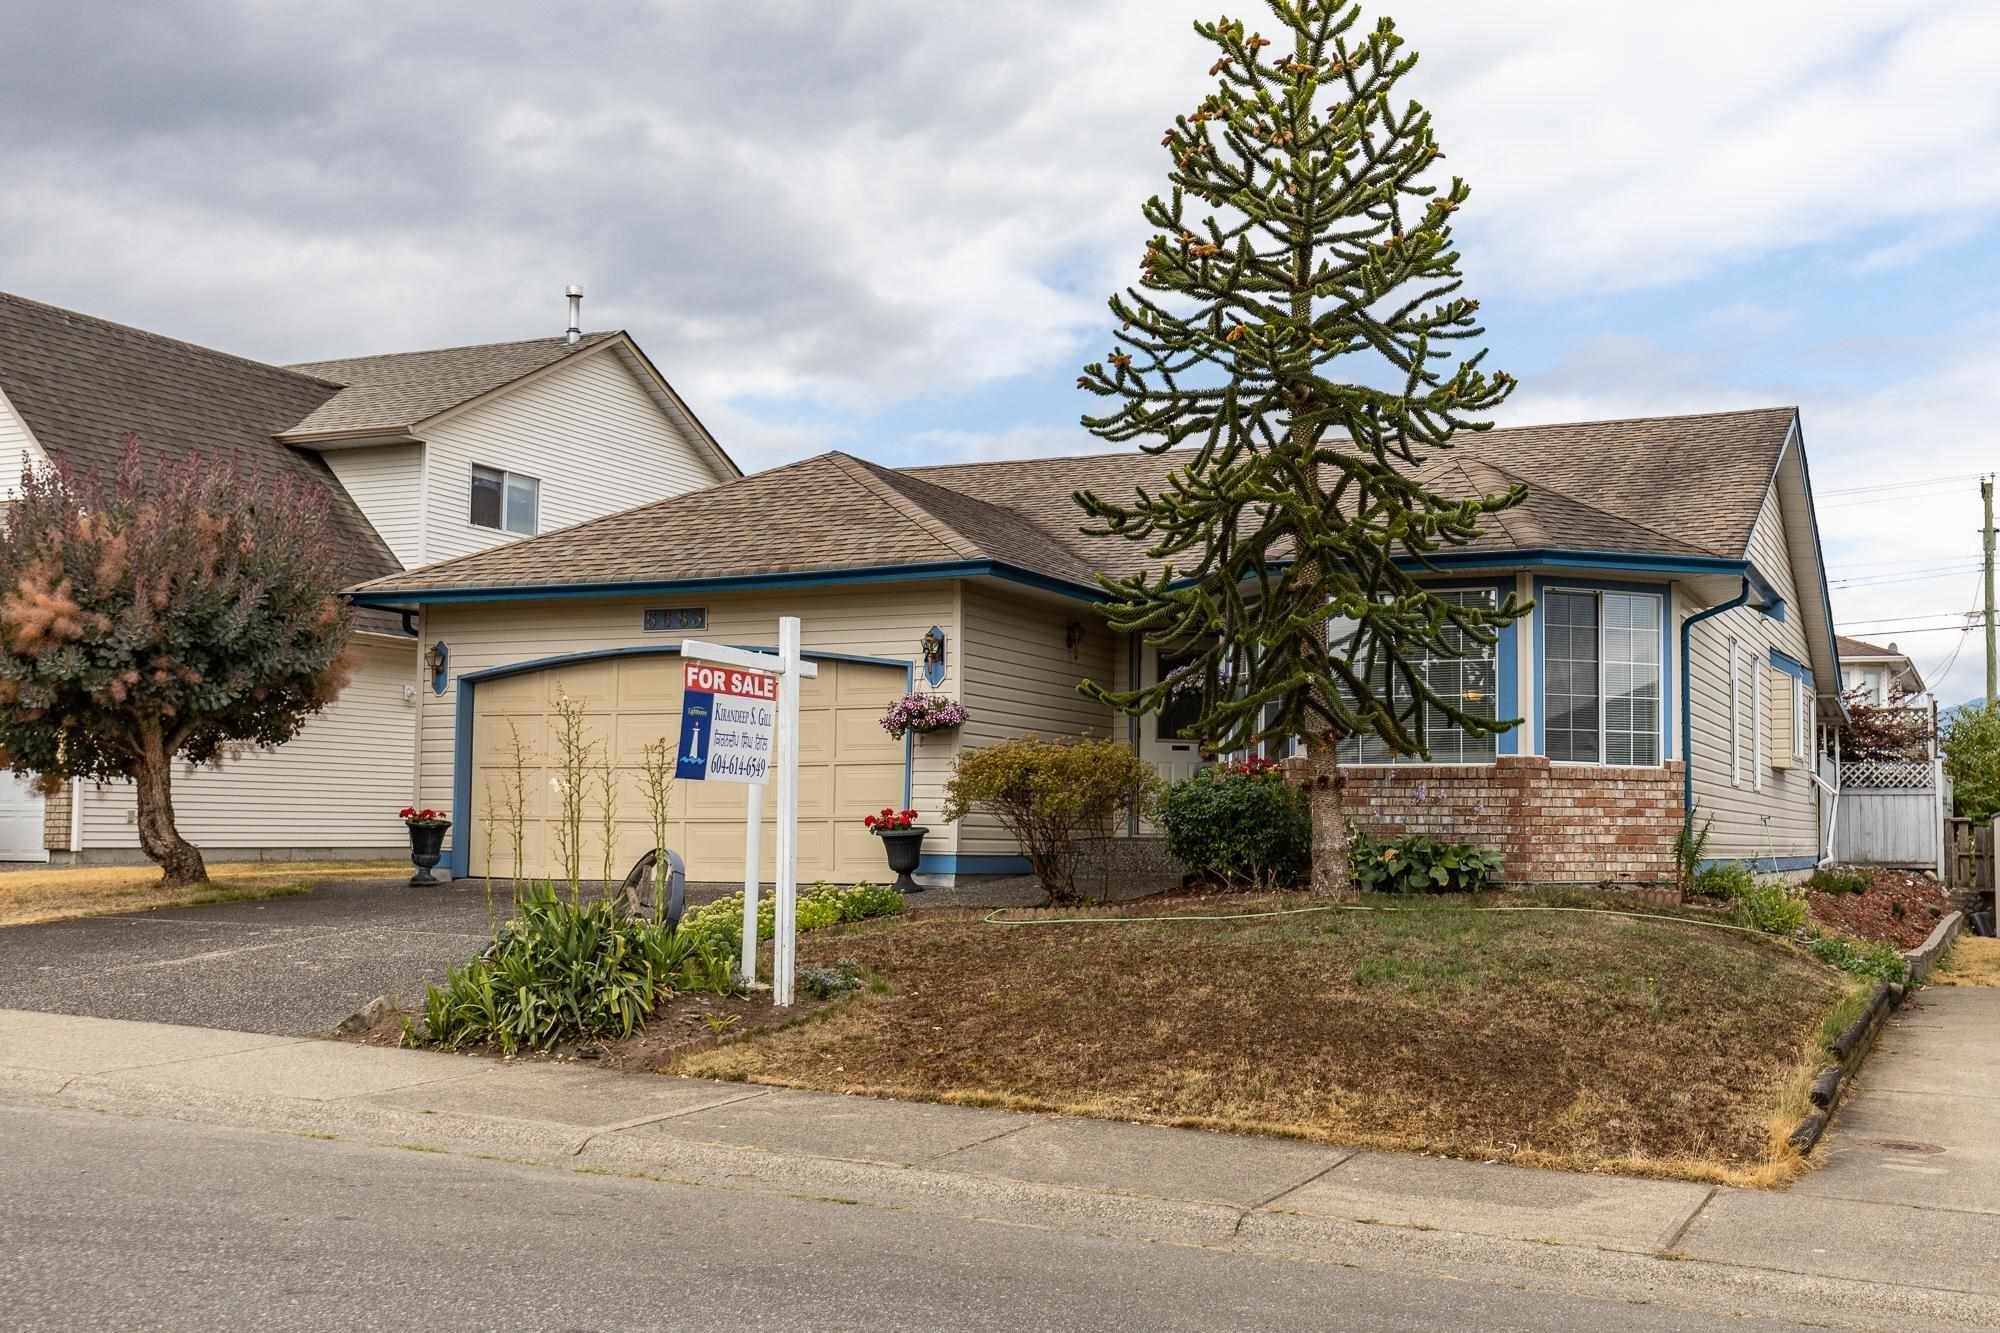 Main Photo: 5683 GILLIAN Place in Chilliwack: Vedder S Watson-Promontory House for sale (Sardis)  : MLS®# R2603235